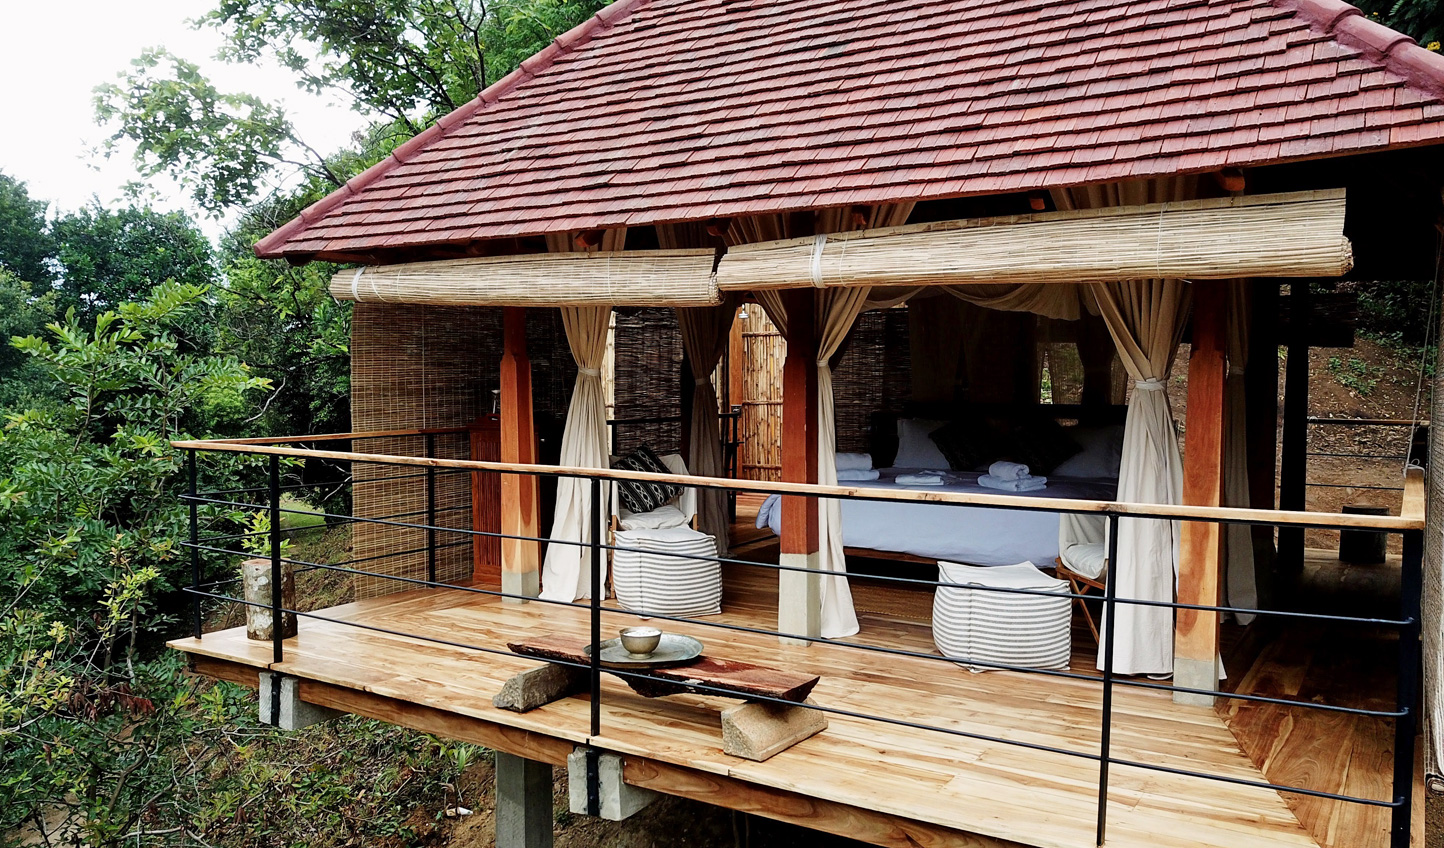 Wake up to enchanting views across the Sri Lankan hill country